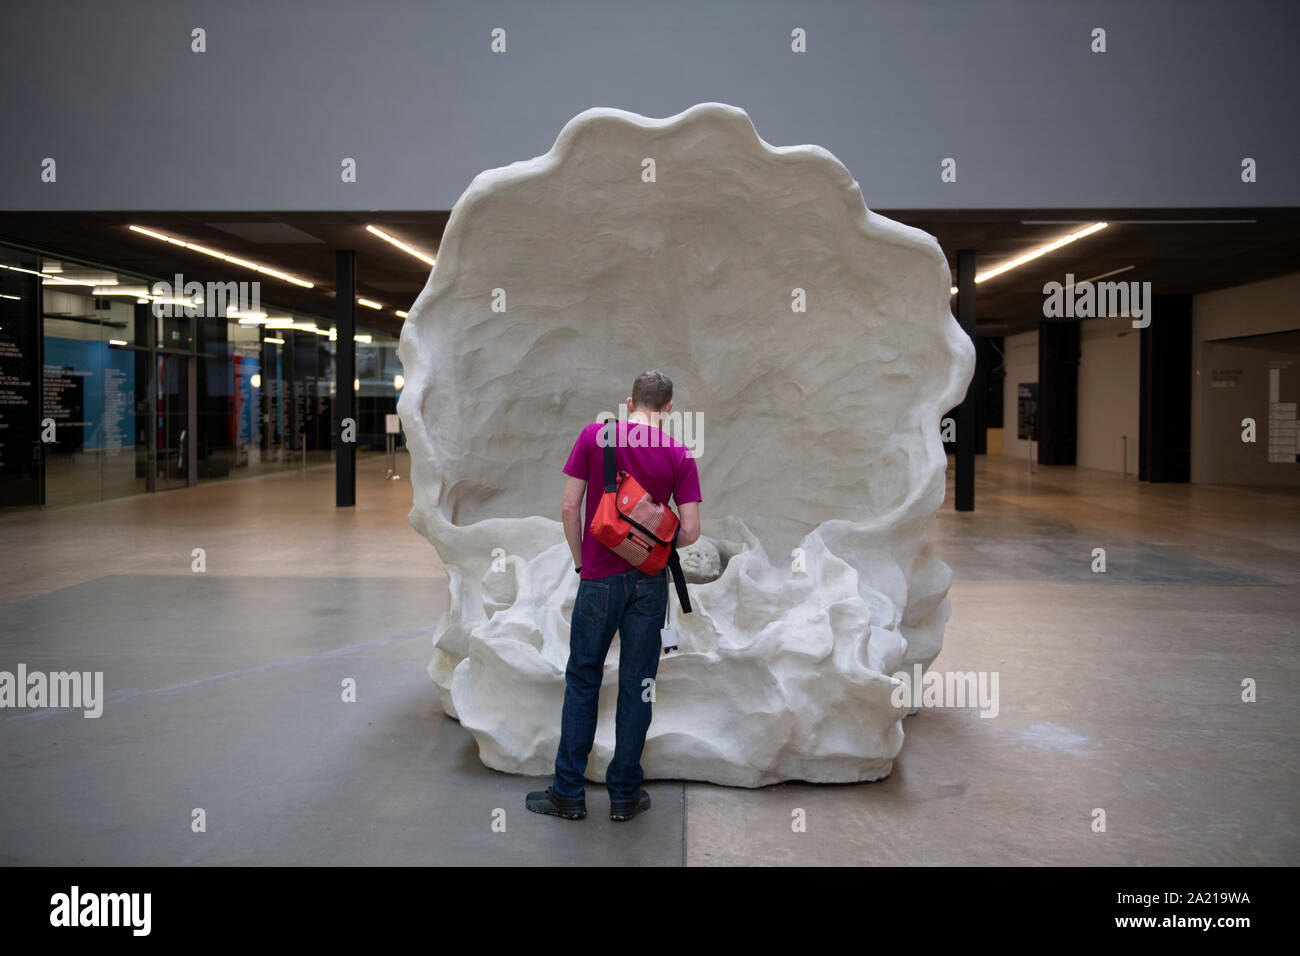 Tate Modern, London, UK. 30th September 2019. A monumental new sculptural work opens within the iconic surrounds of Tate Modern's Turbine Hall, the spectacular installation devised by American artist Kara Walker for the 2019 Hyundai Commission. Credit: Malcolm Park/Alamy Live News. Stock Photo